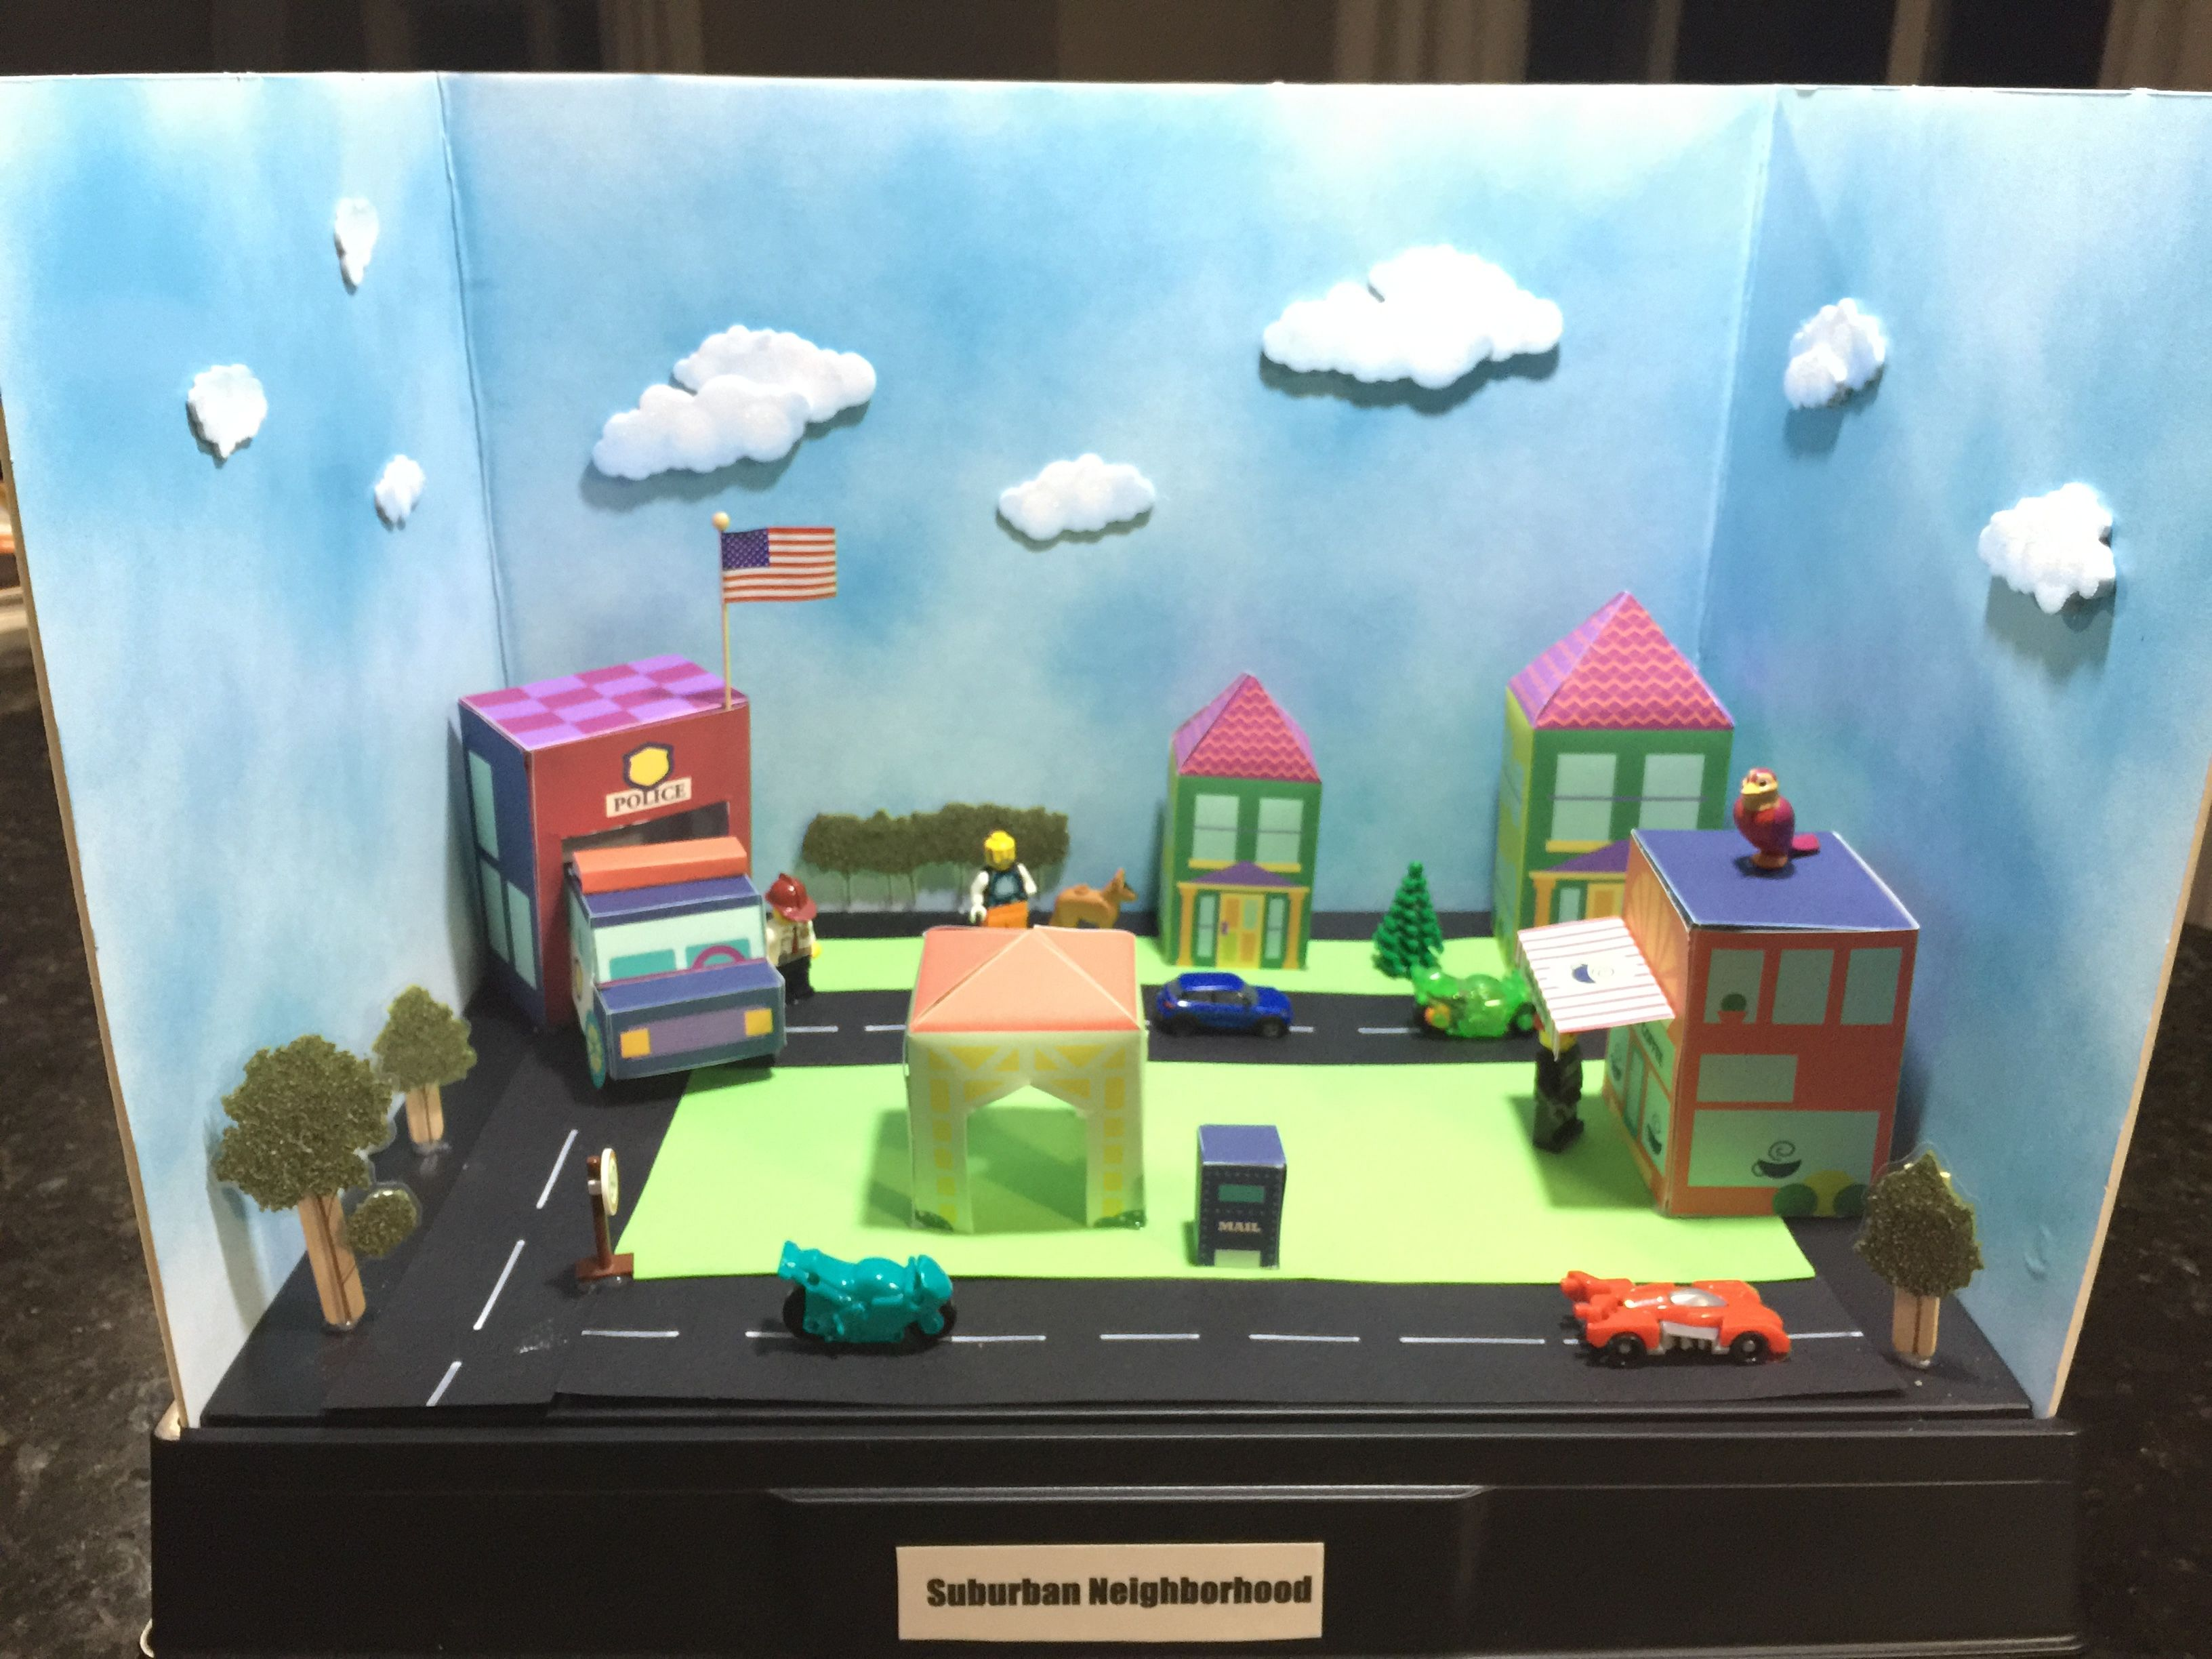 Miniature Children S Bedroom Room Box Diorama: Social Study Project: Suburban Community Diorama